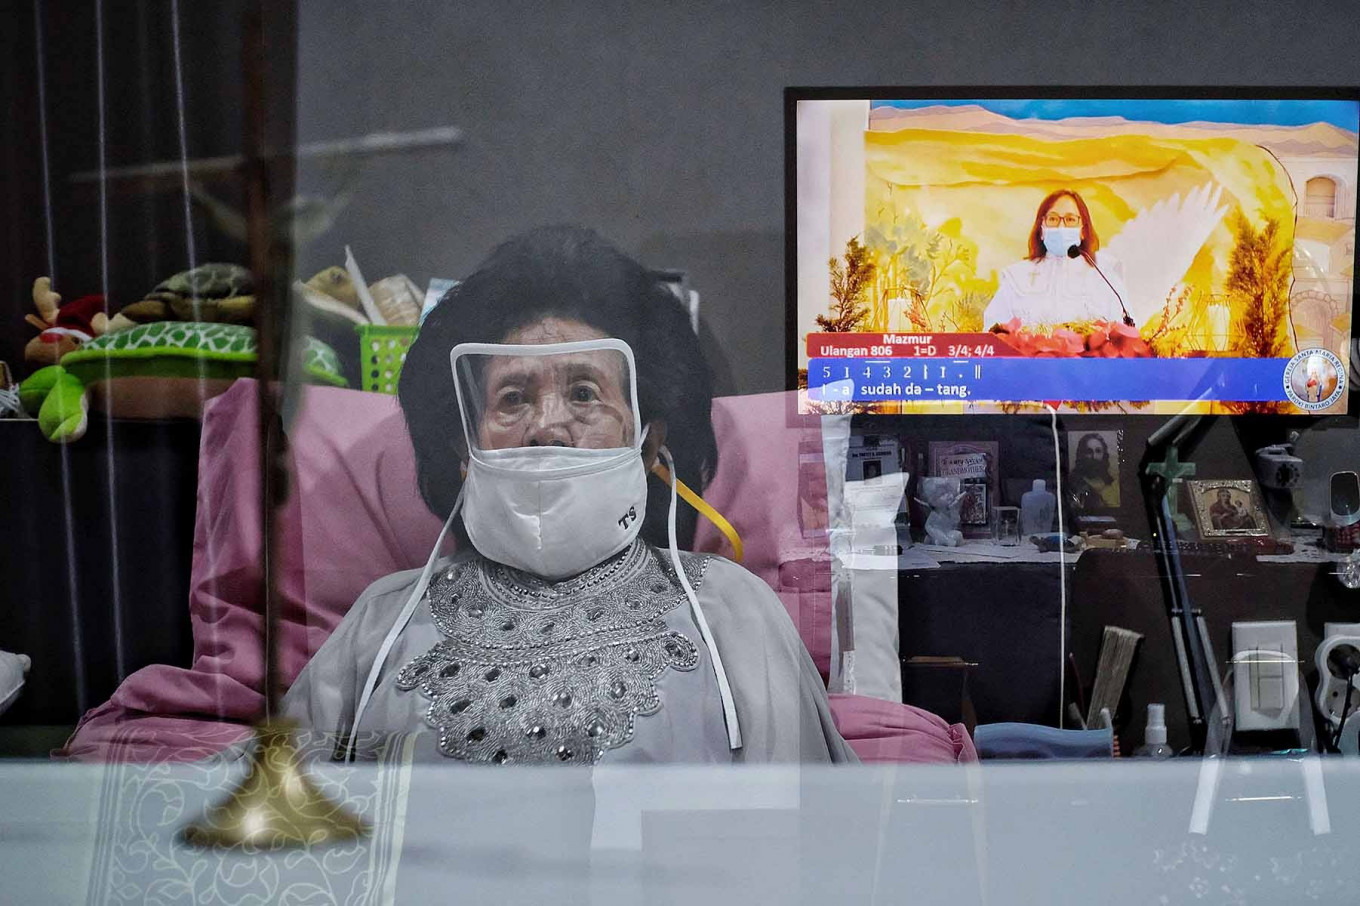 Thutty Soekotjo, 92, watches an online Holy Mass in South Tangerang, Banten, on Dec. 24. Most Christians attended online masses as churches implemented strict health protocol, including restricting the age and limiting numbers of congregants, to curb COVID-19 transmission during Christmas. JP/Seto Wardhana